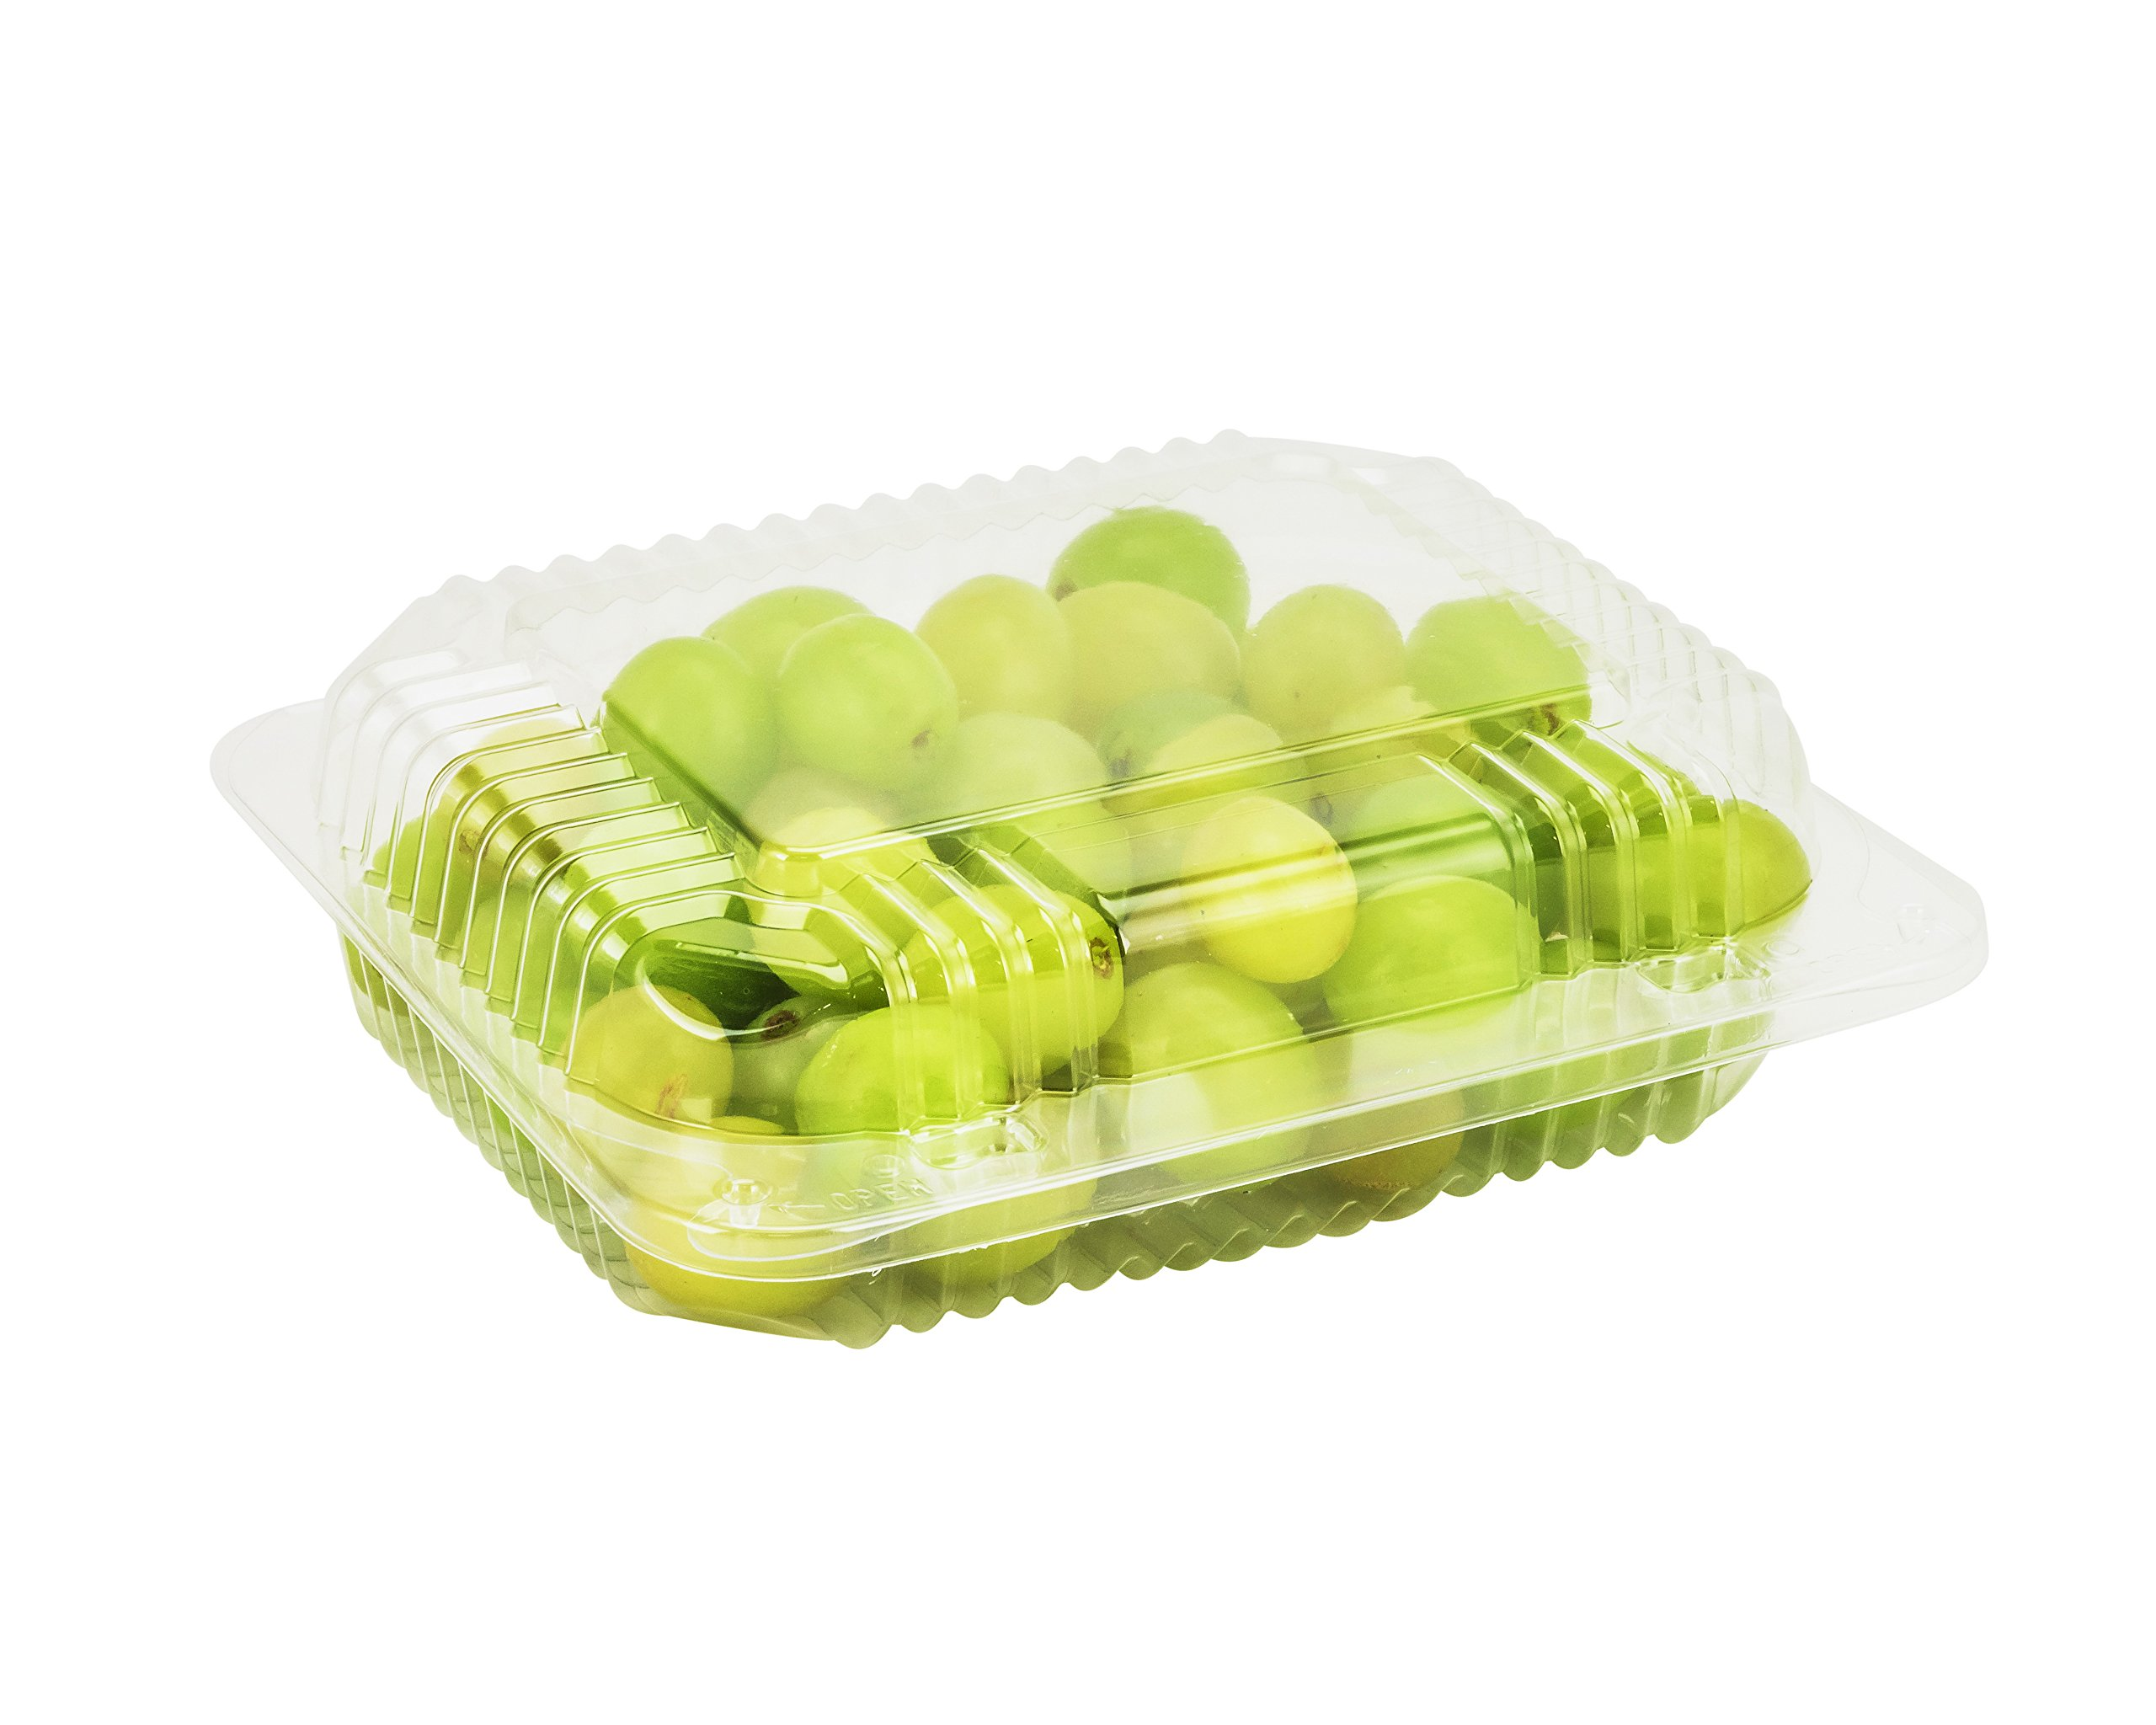 Dart C26UT1, 7''x6''x2'' StayLock Clear Oblong Container With Clear Hinged Lid, Take Out Salad Dessert Fruit Deli Food Disposable Containers (100)